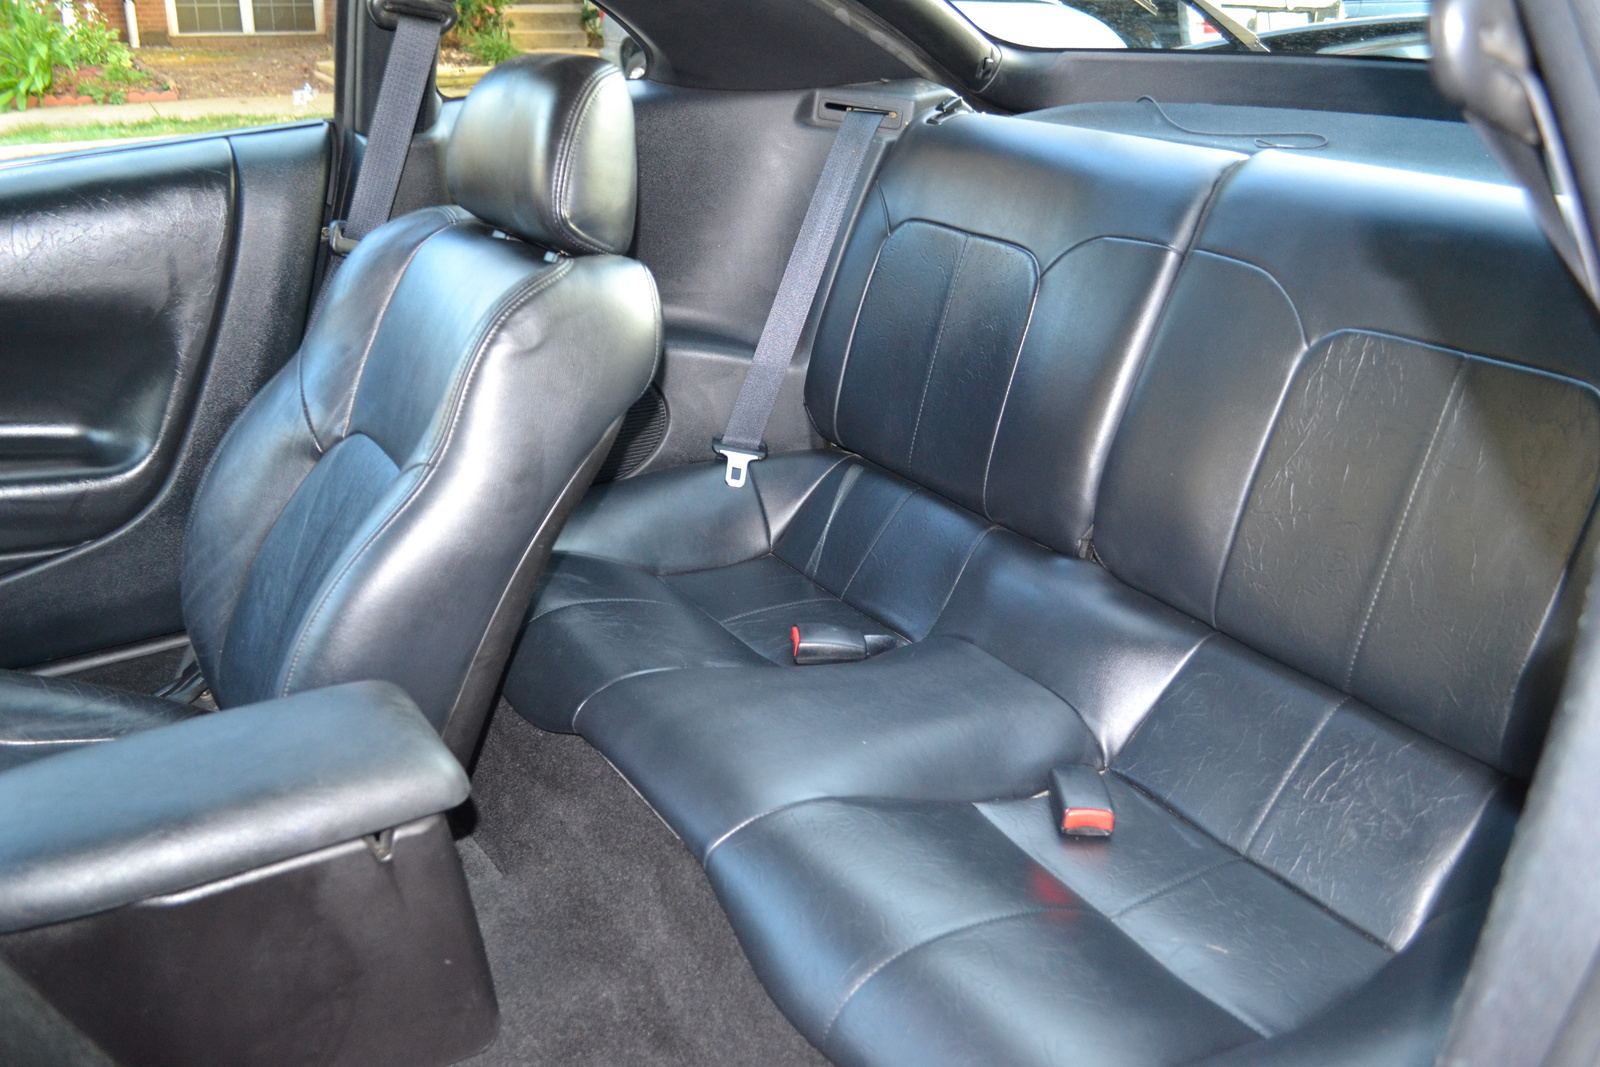 eclipse car 2006 interior - photo #38